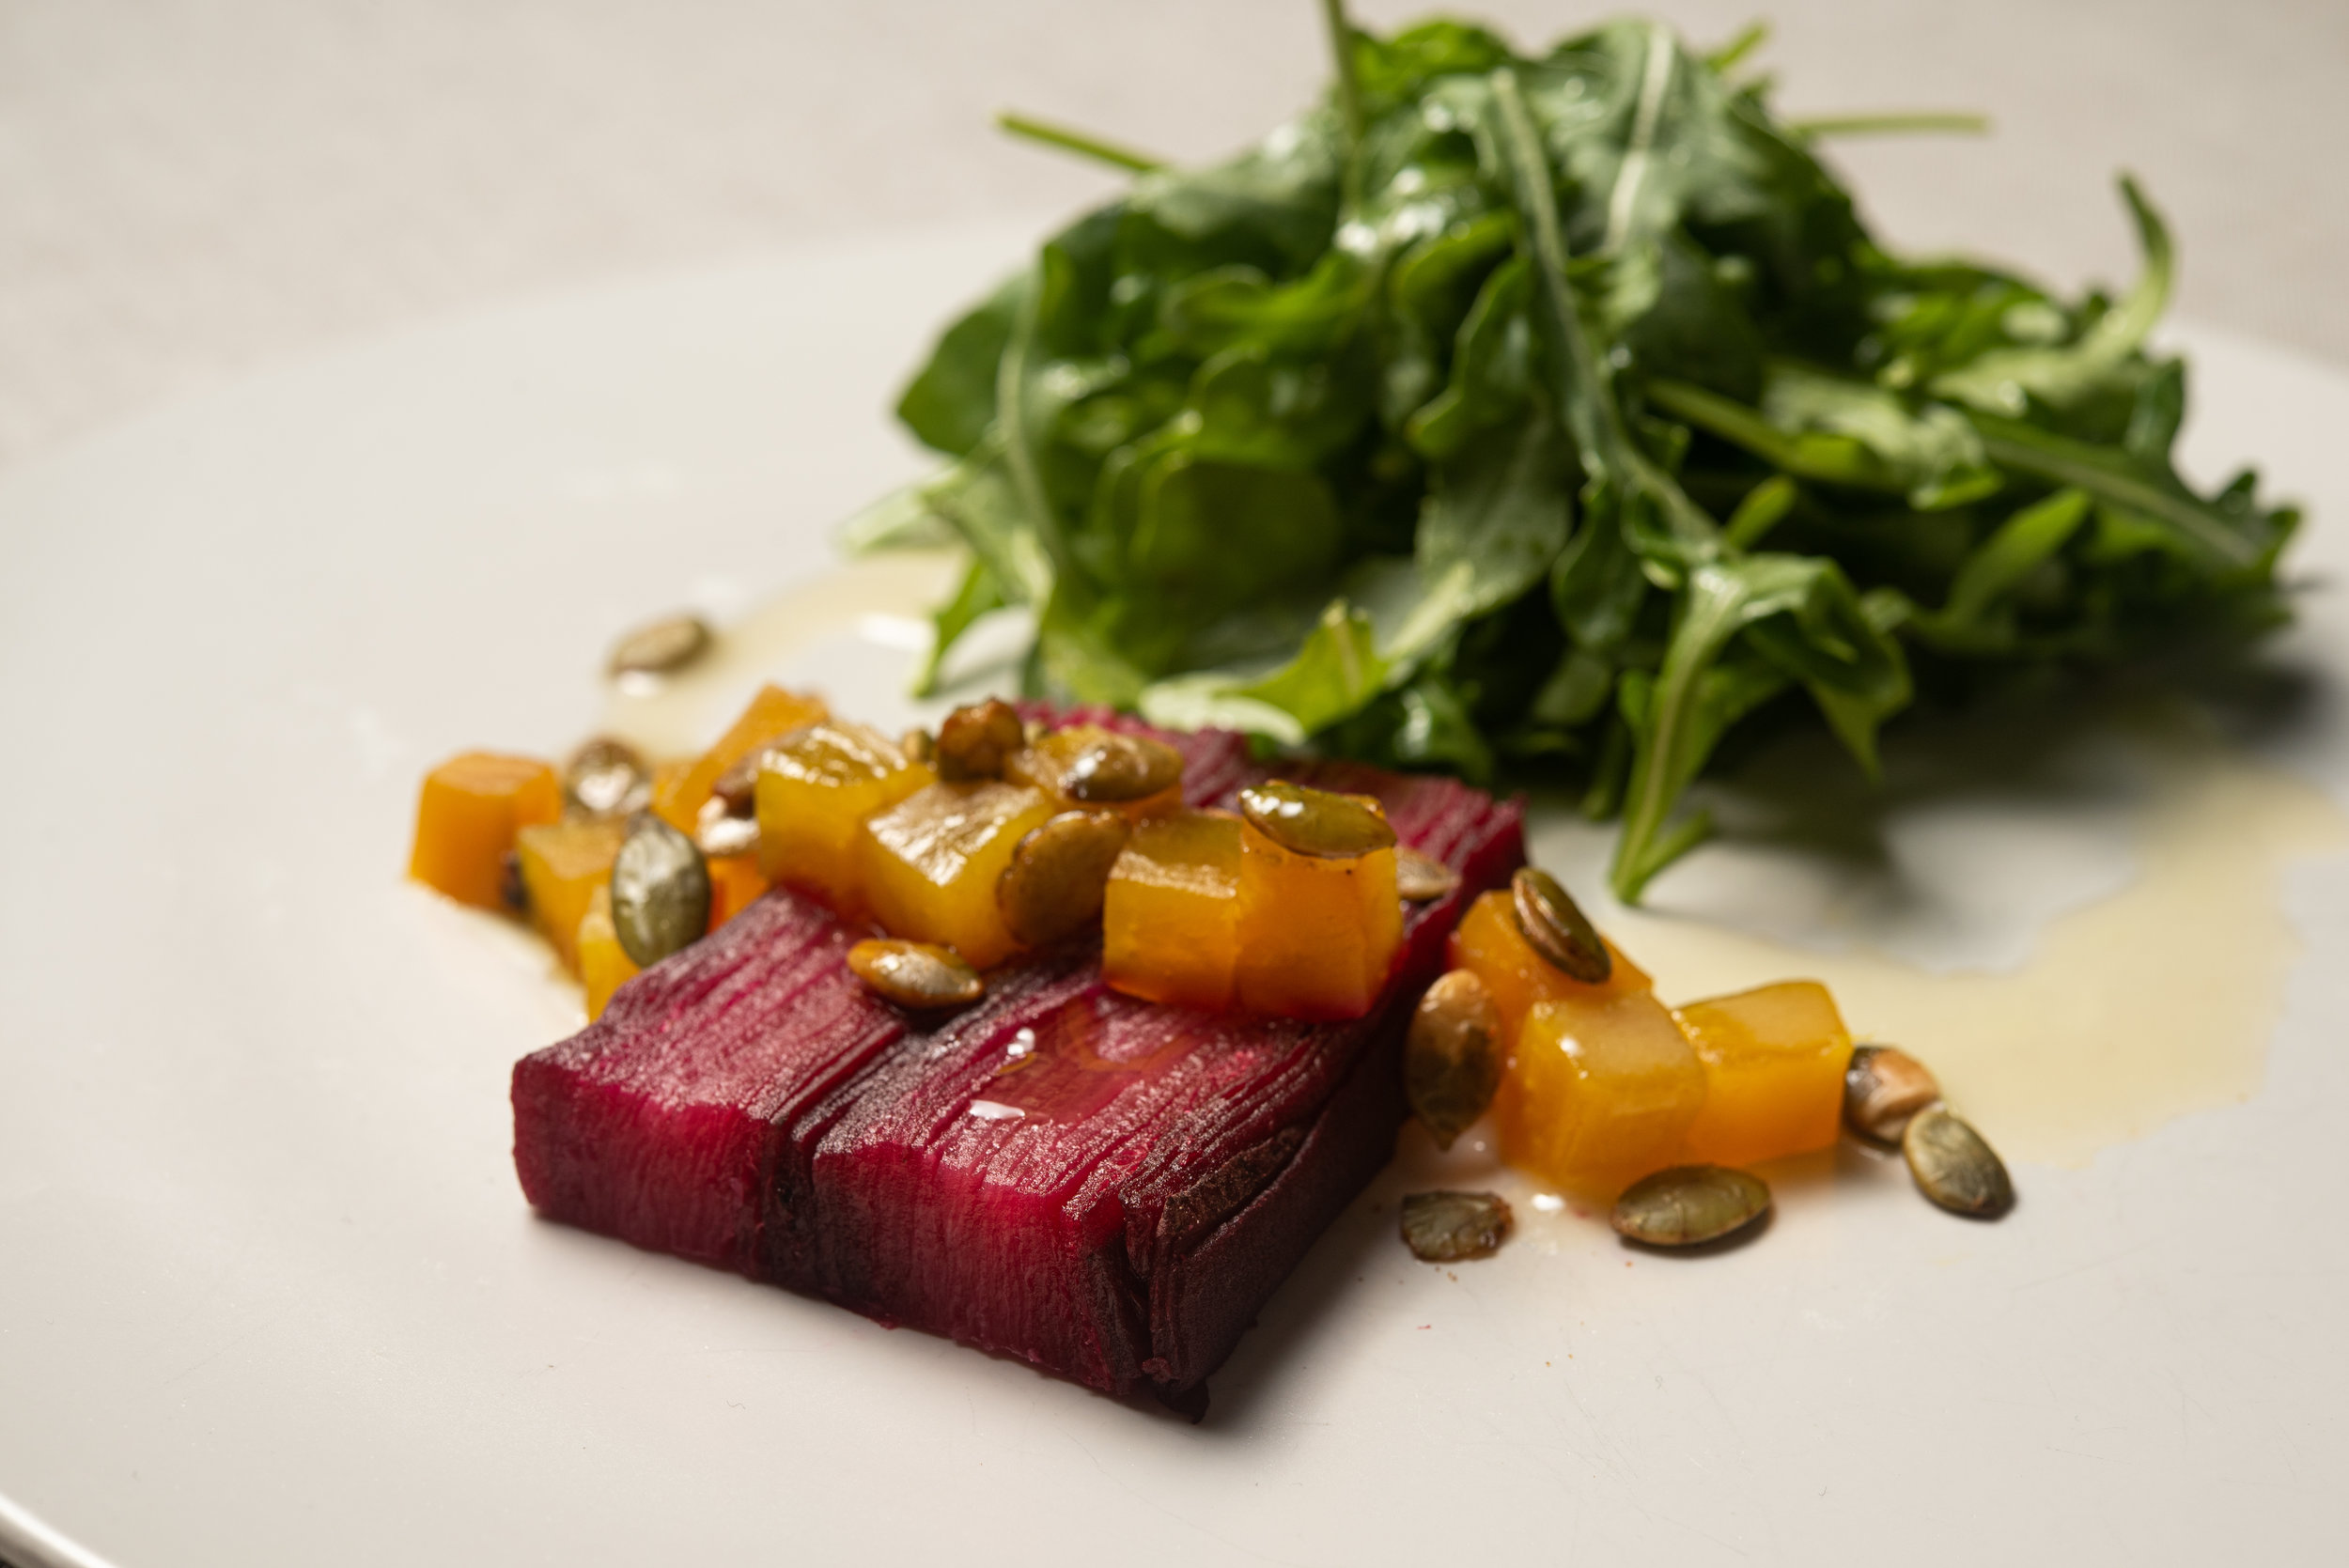 Beet Terrine with Tricolor Beets, Toasted Pumpkin Seed, Apple Cider Saba, Arugula (2).jpg